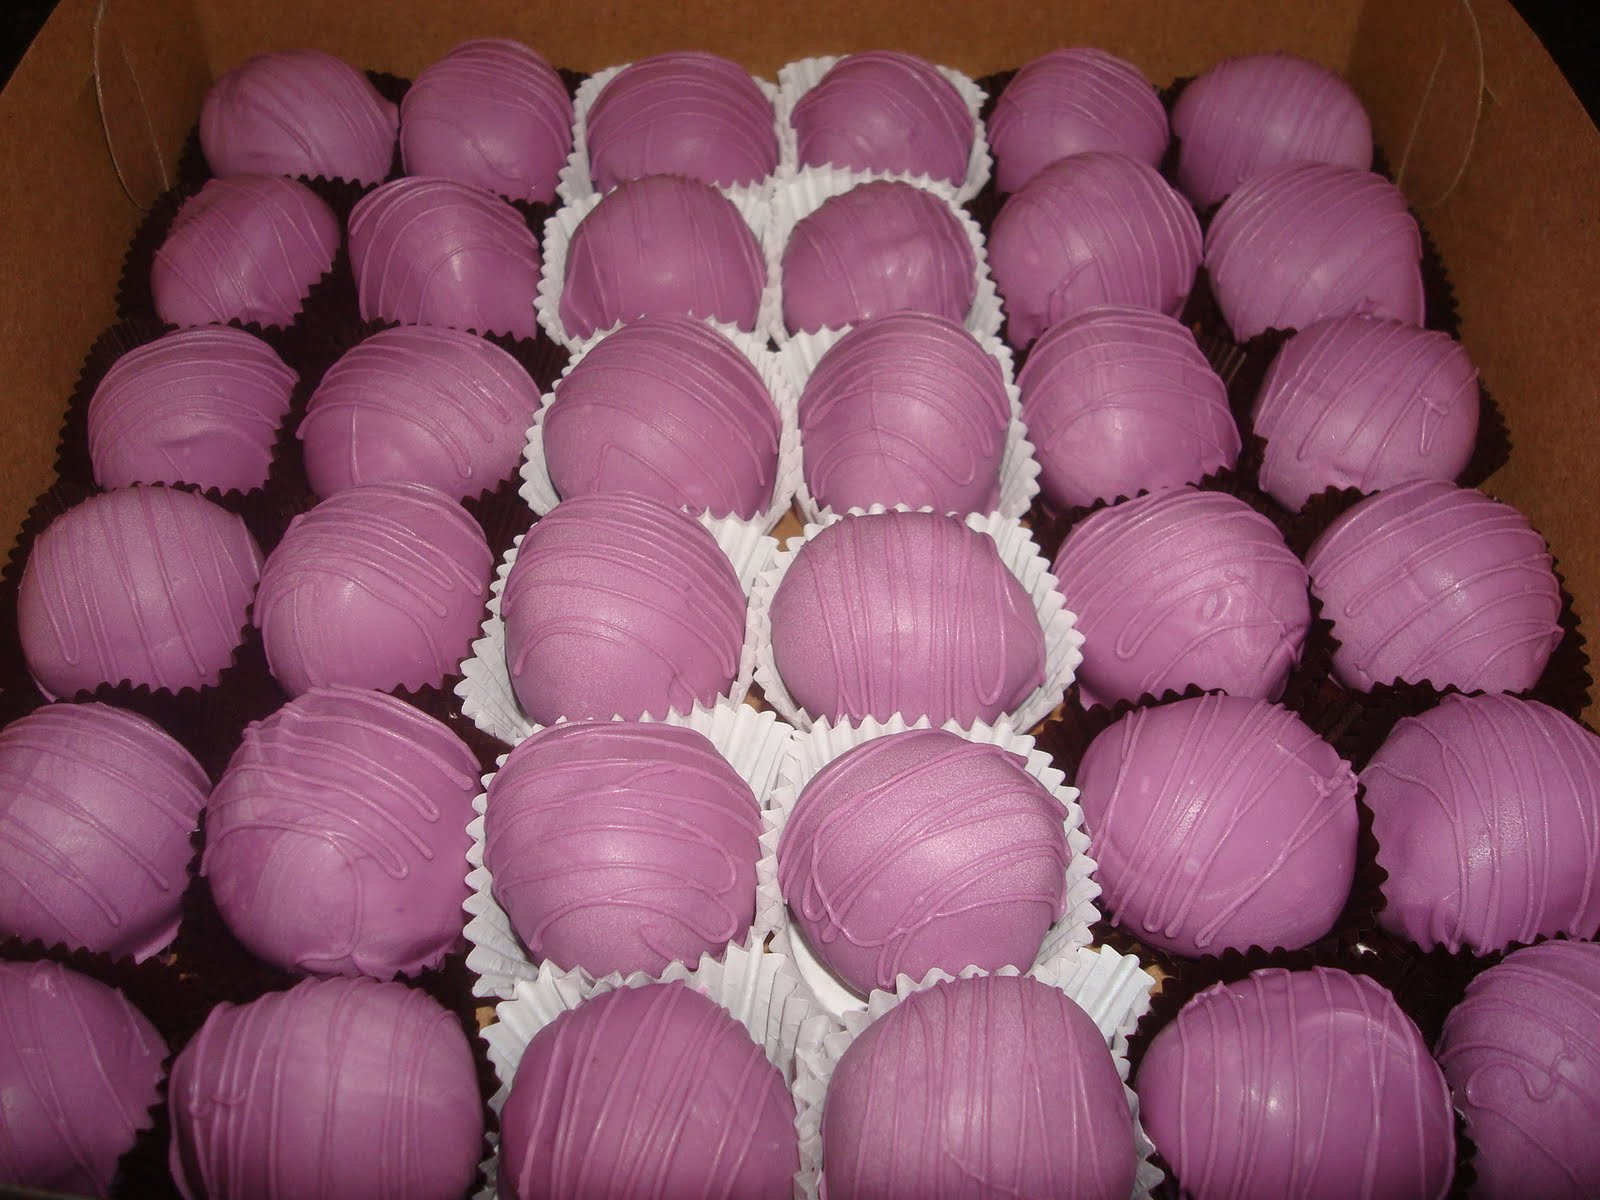 Cake Decorating Coloured Balls : Sugar Boo Sweets: Custom colored cake balls